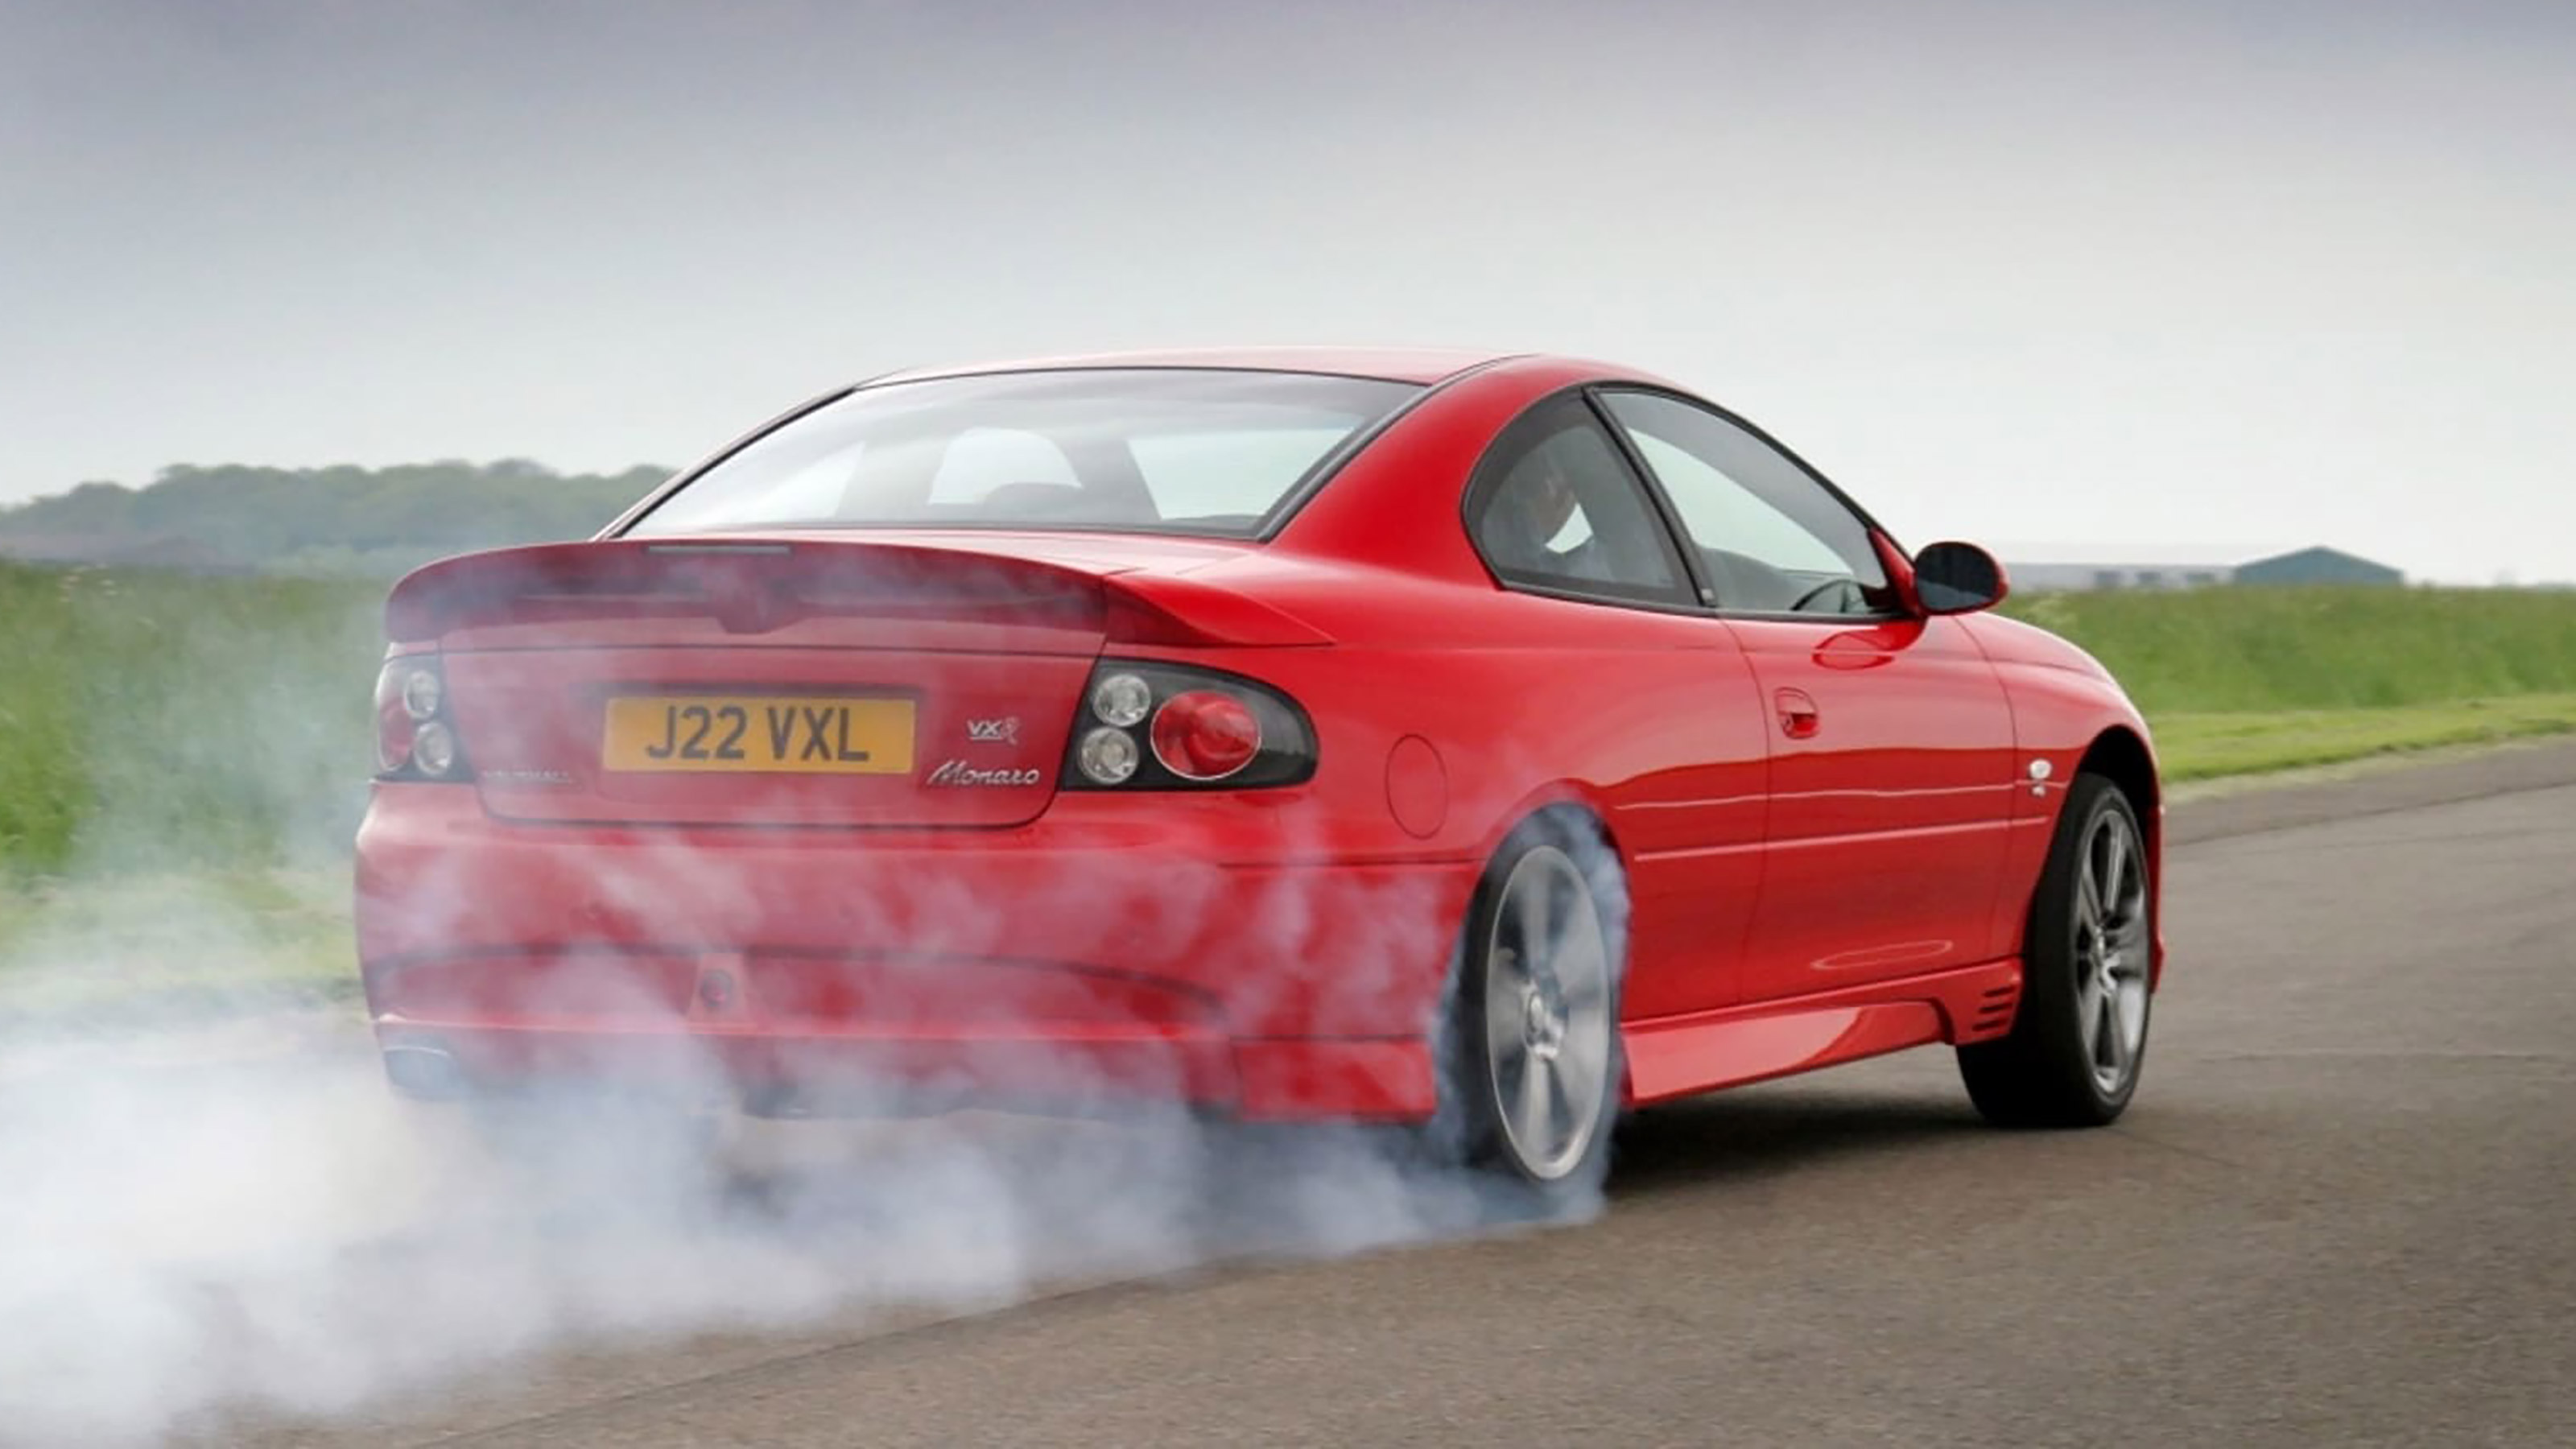 Cheap Fast Cars 2020 The Best Budget Performance Cars On The Market Evo